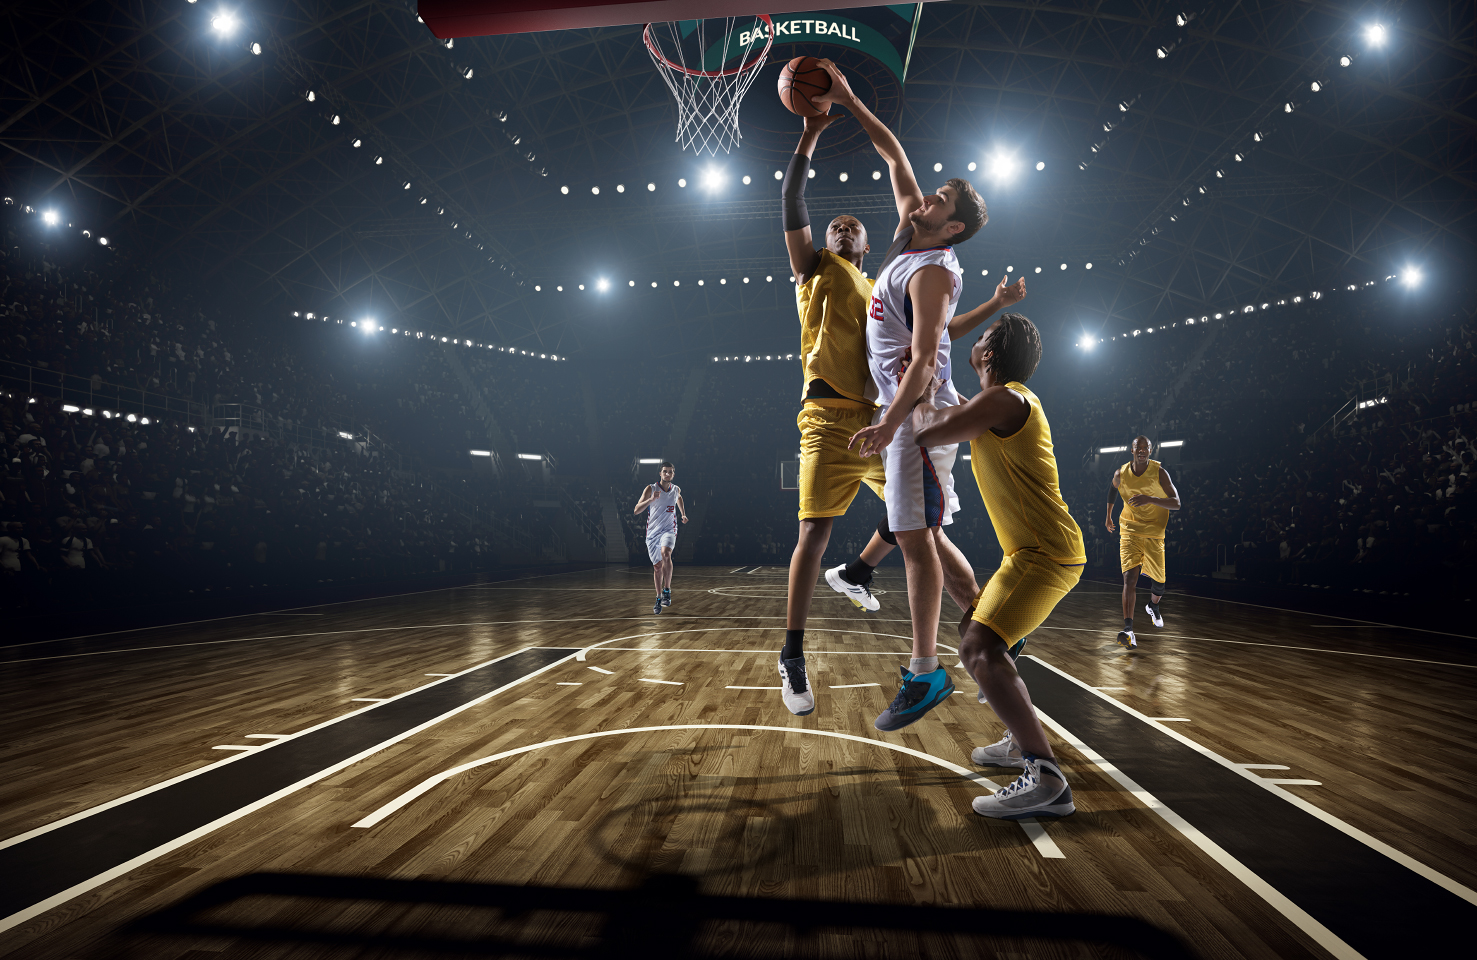 The positions of players in basketball are Point guard, Shooting guard, Small forward, Power forward and Center.